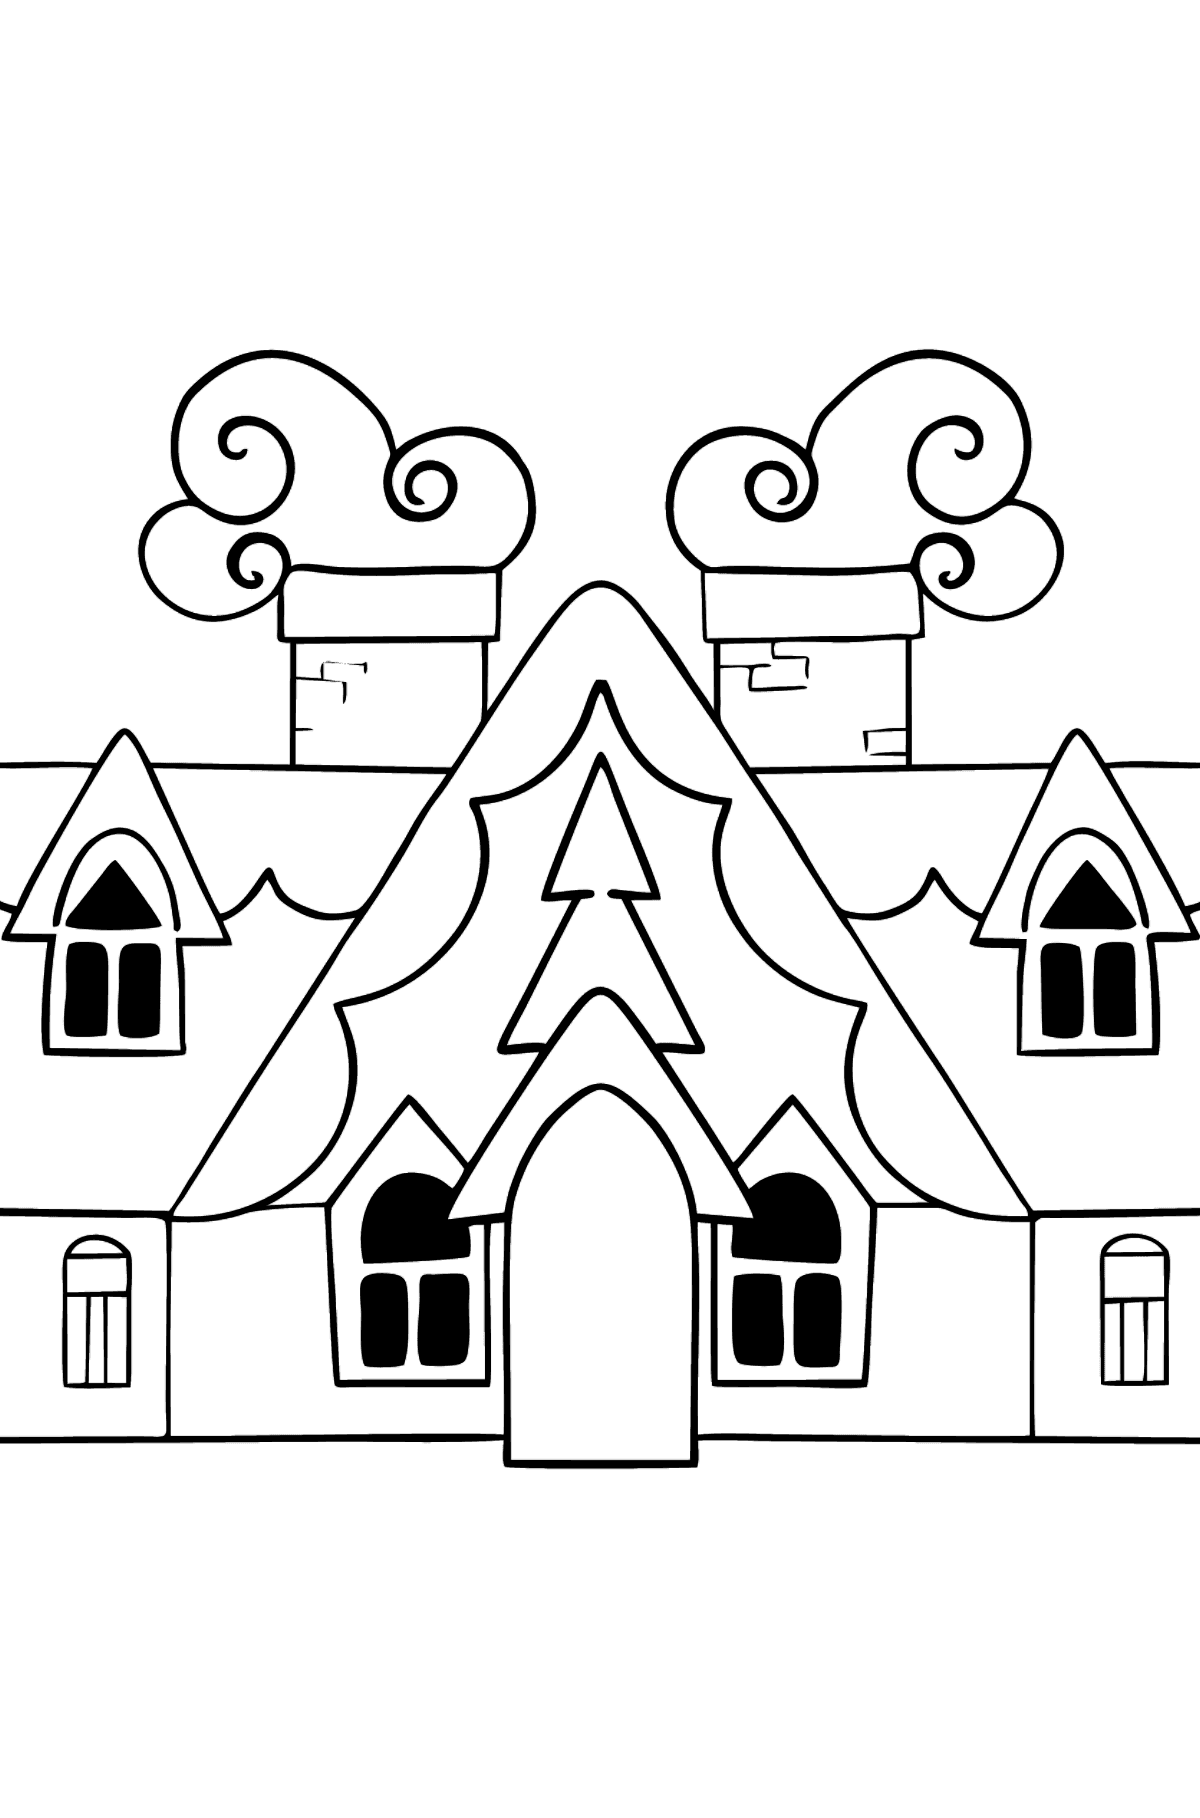 Complex Coloring Page - A Magic House - Coloring Pages for Kids